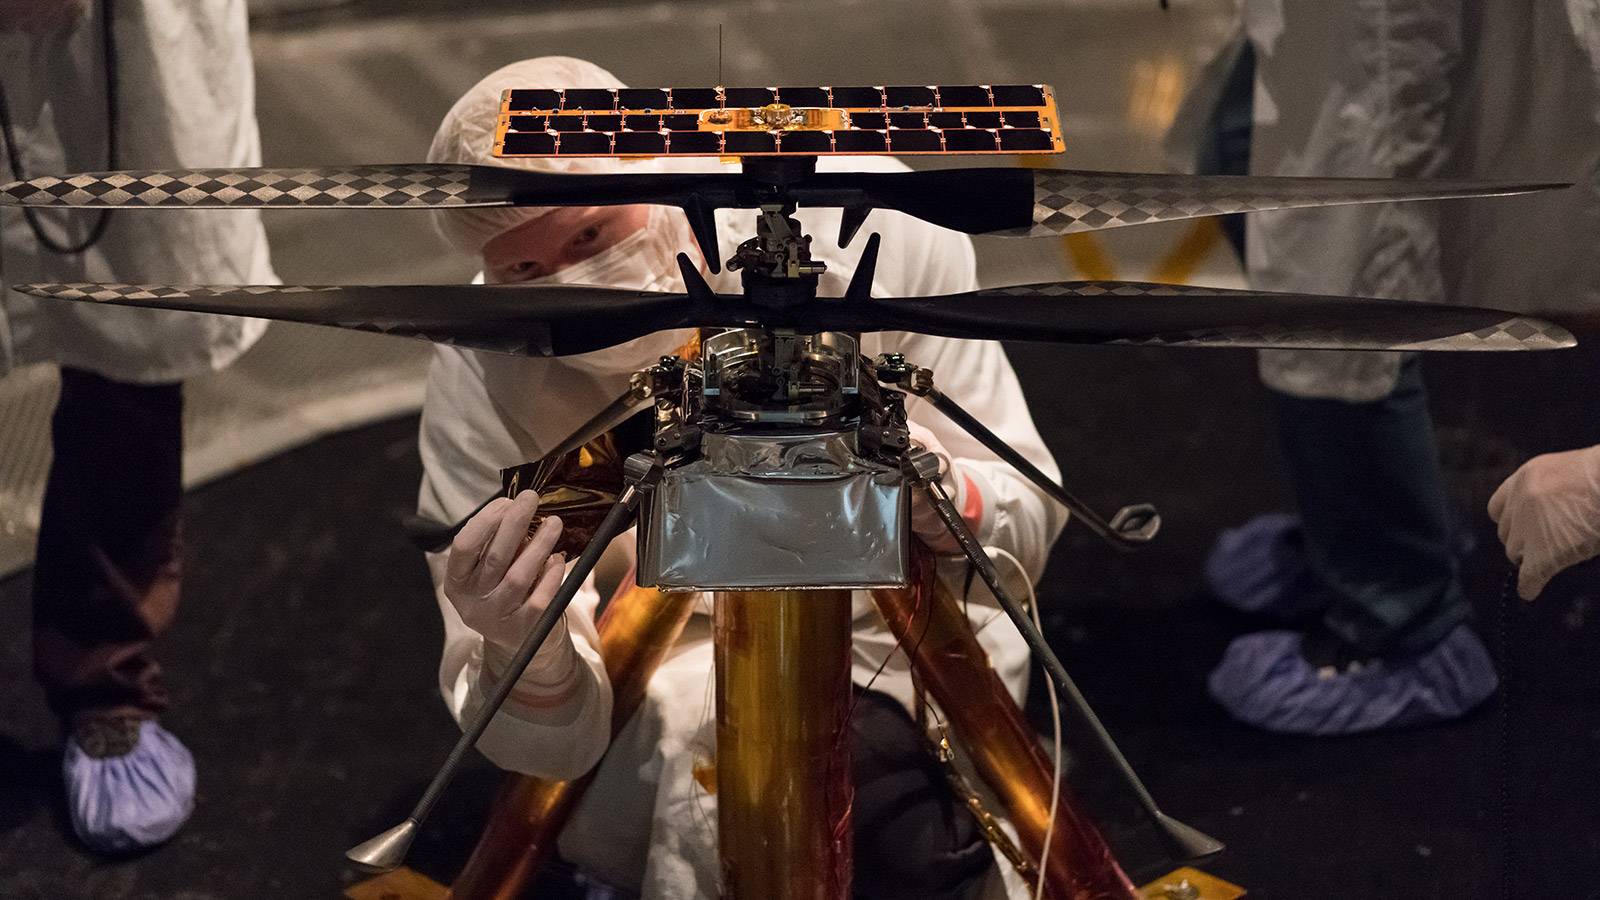 Members of the NASA Mars Helicopter team attach a thermal film to the exterior of the flight model of the Mars Helicopter.